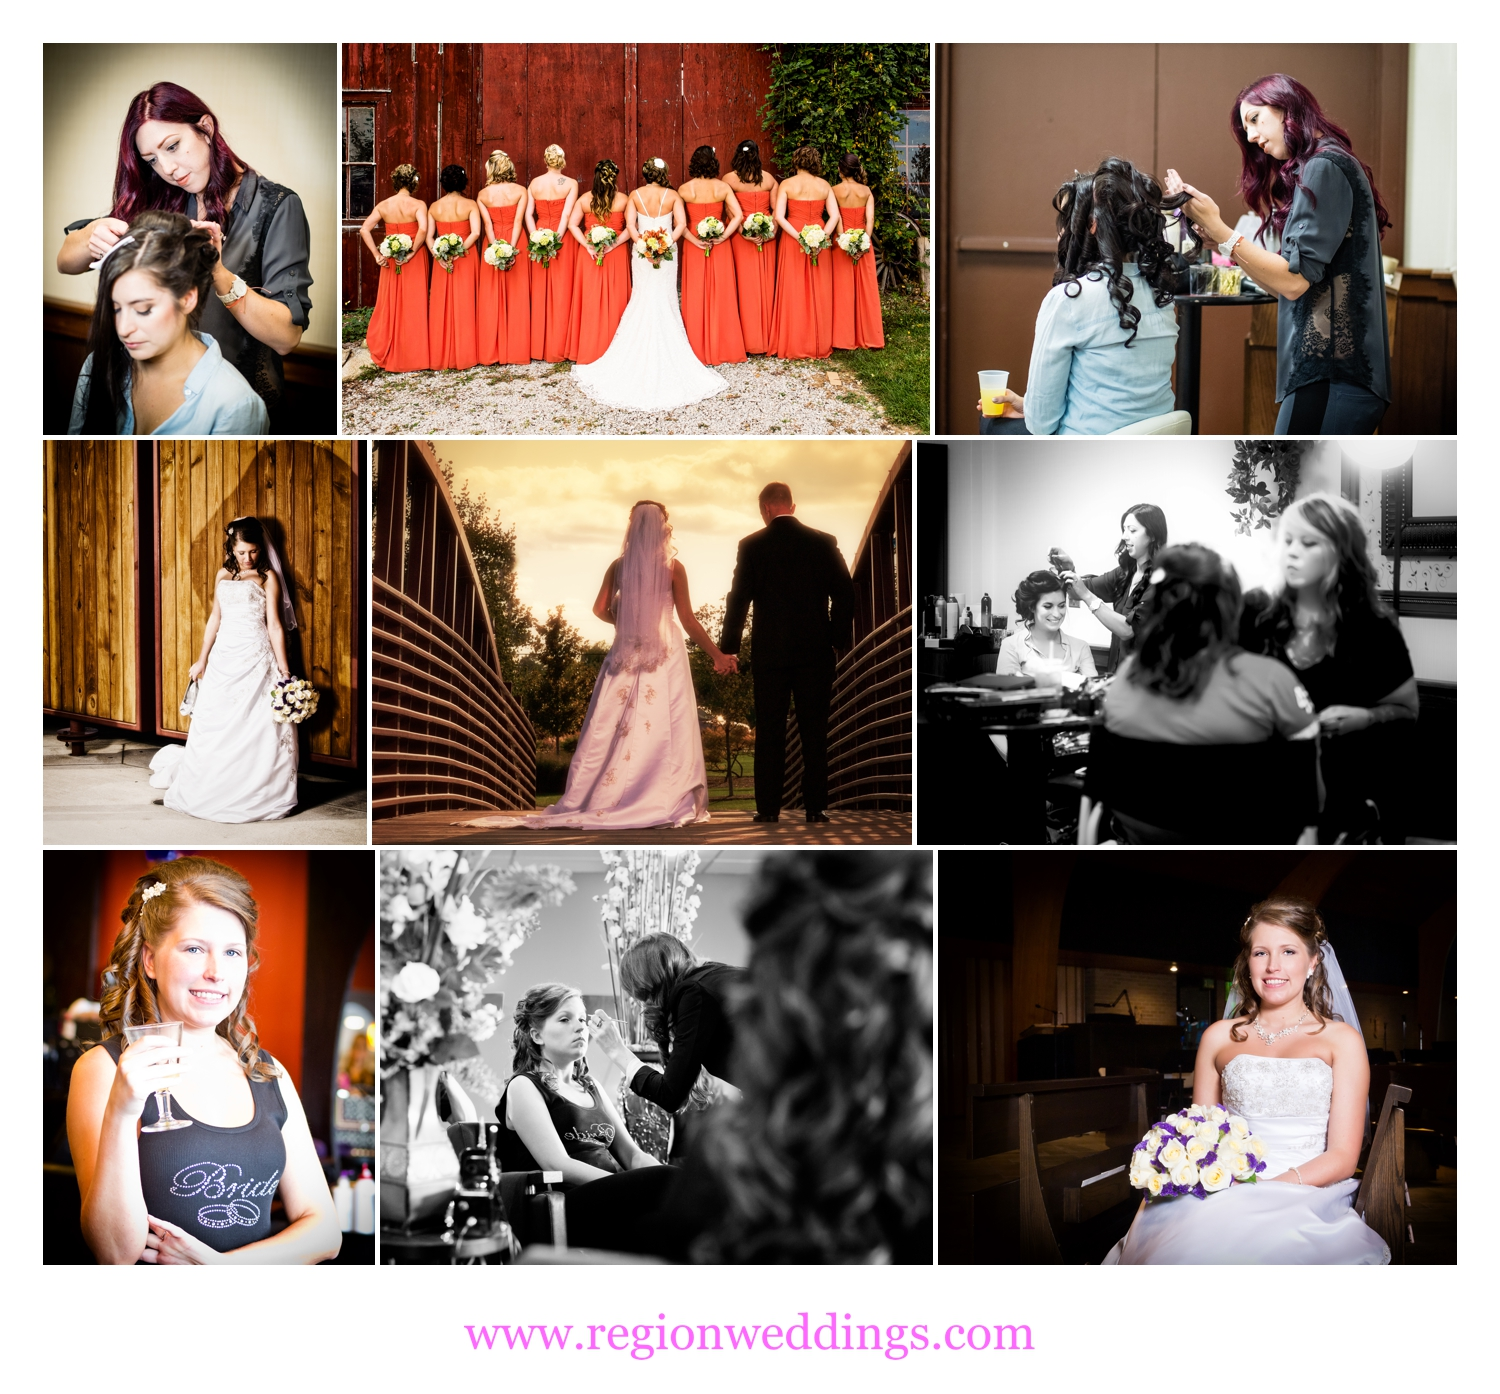 Shannon Grimmer of Fringe Salon preps brides and her bridesmaids on wedding day.